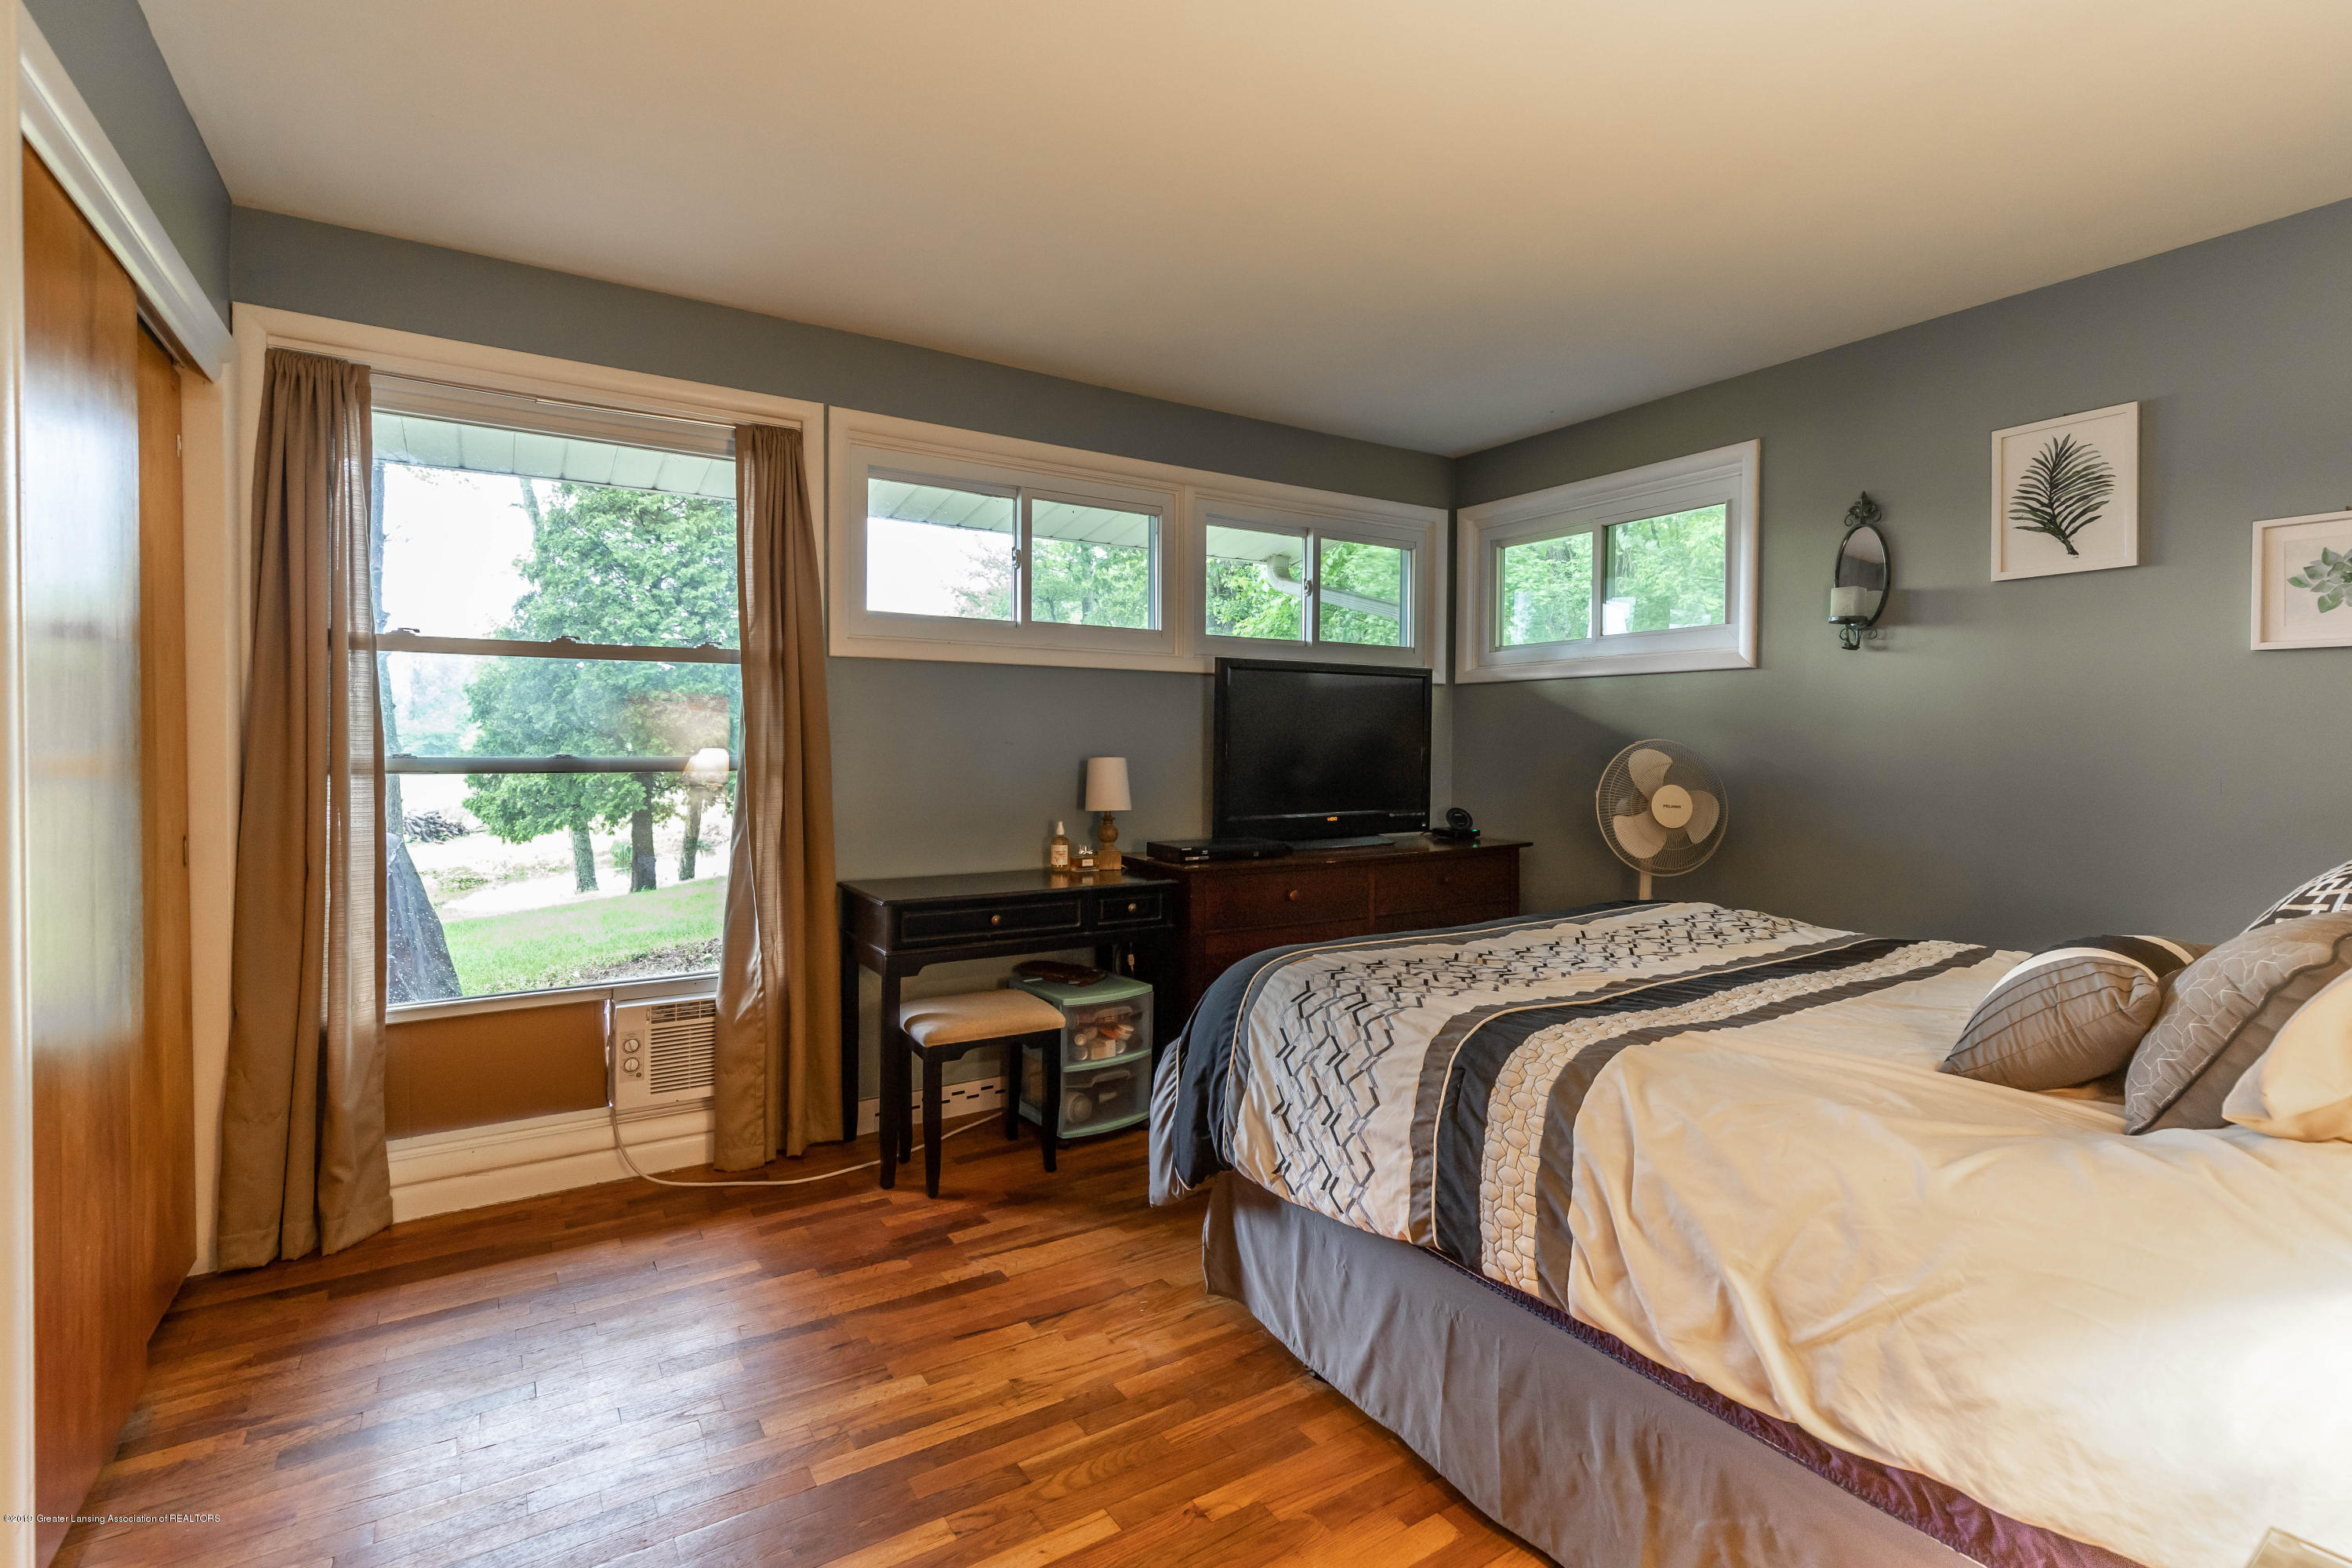 2444 W Kimmel Rd - kimmelbed1 (1 of 1) - 18